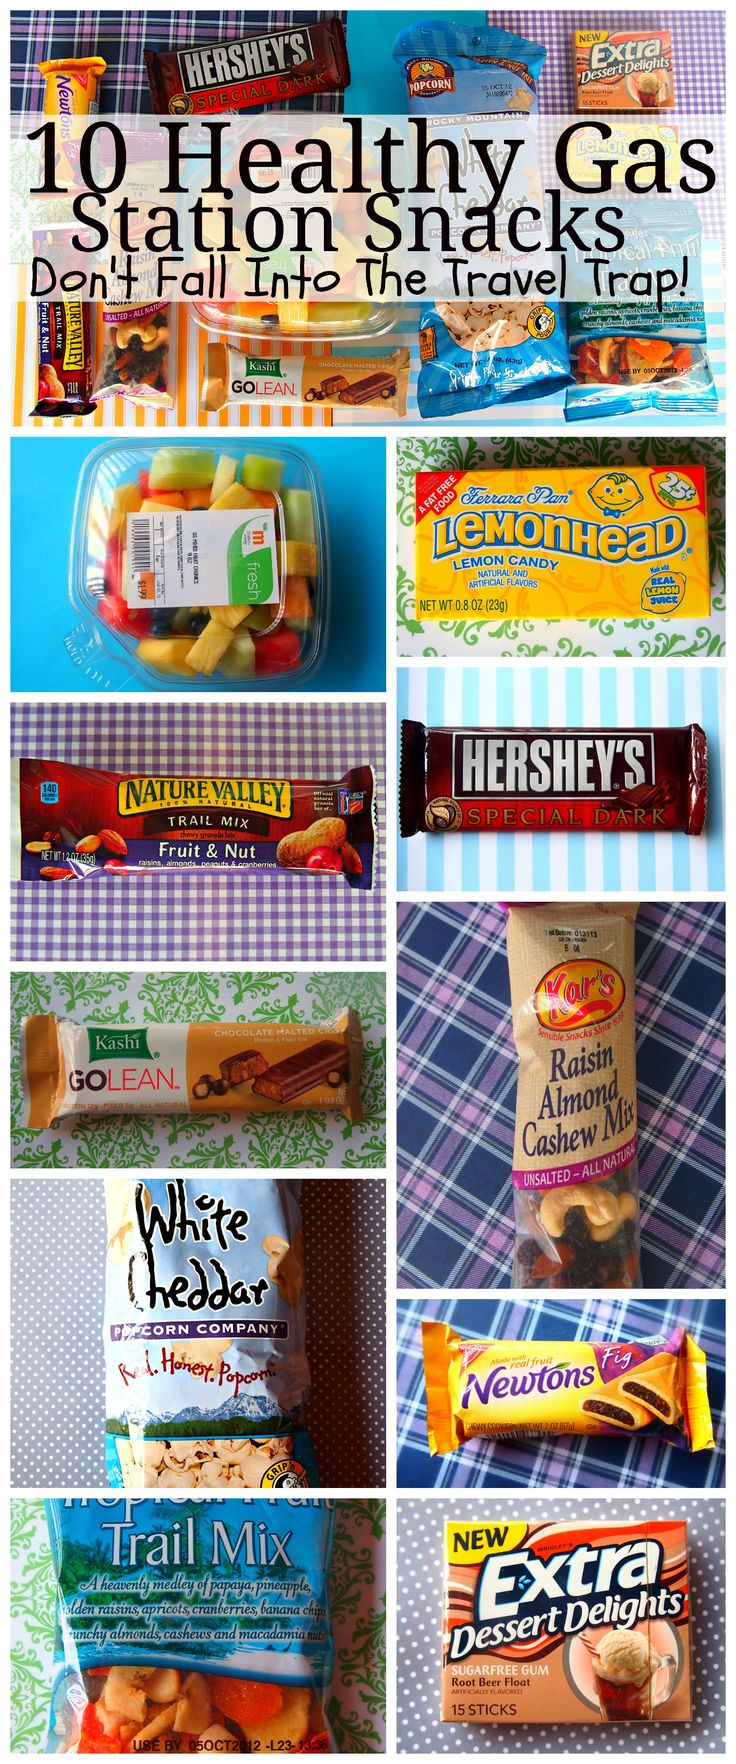 10 Healthy Gas Station Snacks! Don't Fall Into The Travel Trap! Click to read more!: Diet Food, Stations Snacks, Healthy Gas, Travel Traps, Travel Healthy Snacks, Healthy Food Snacks, 10 Healthy, Gas Stations Food, Healthy Hockey Snacks